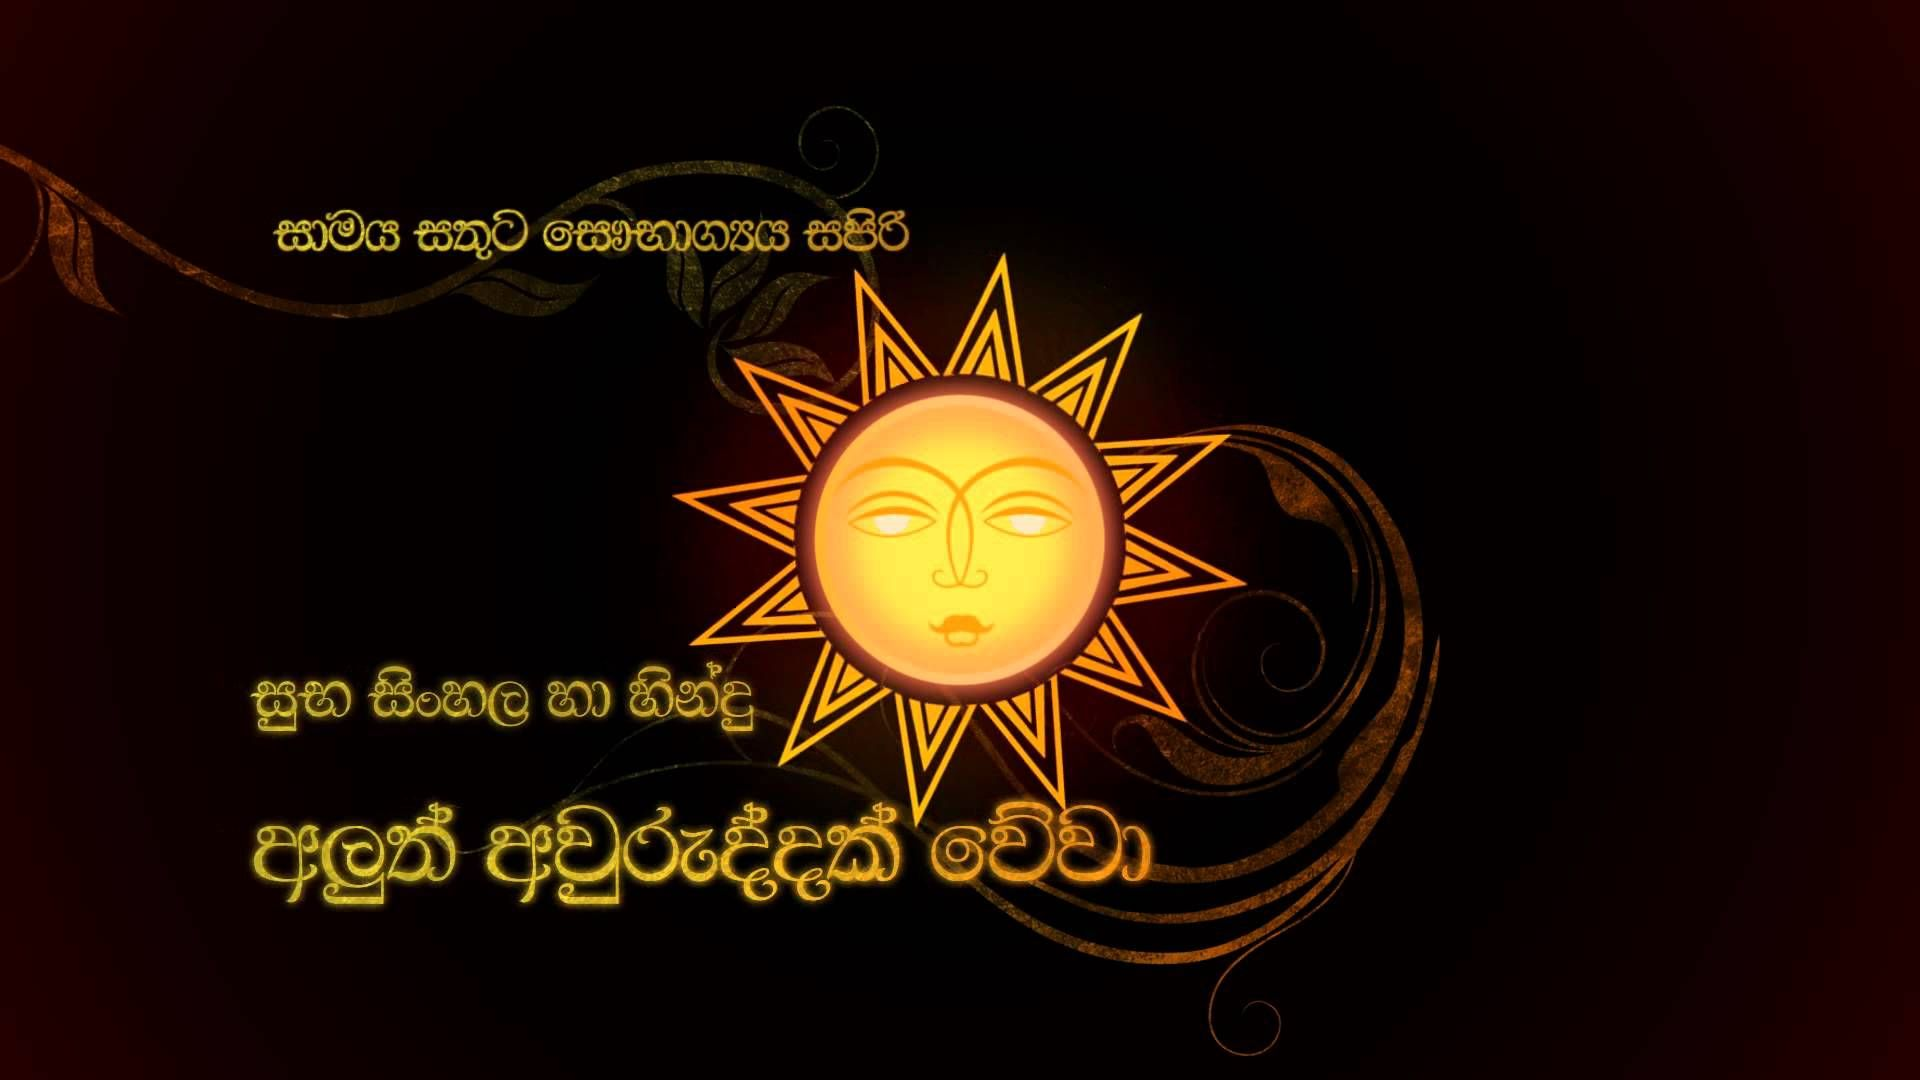 Happy Sinhalese New Year 2019 Festival Sinhala and Tamil